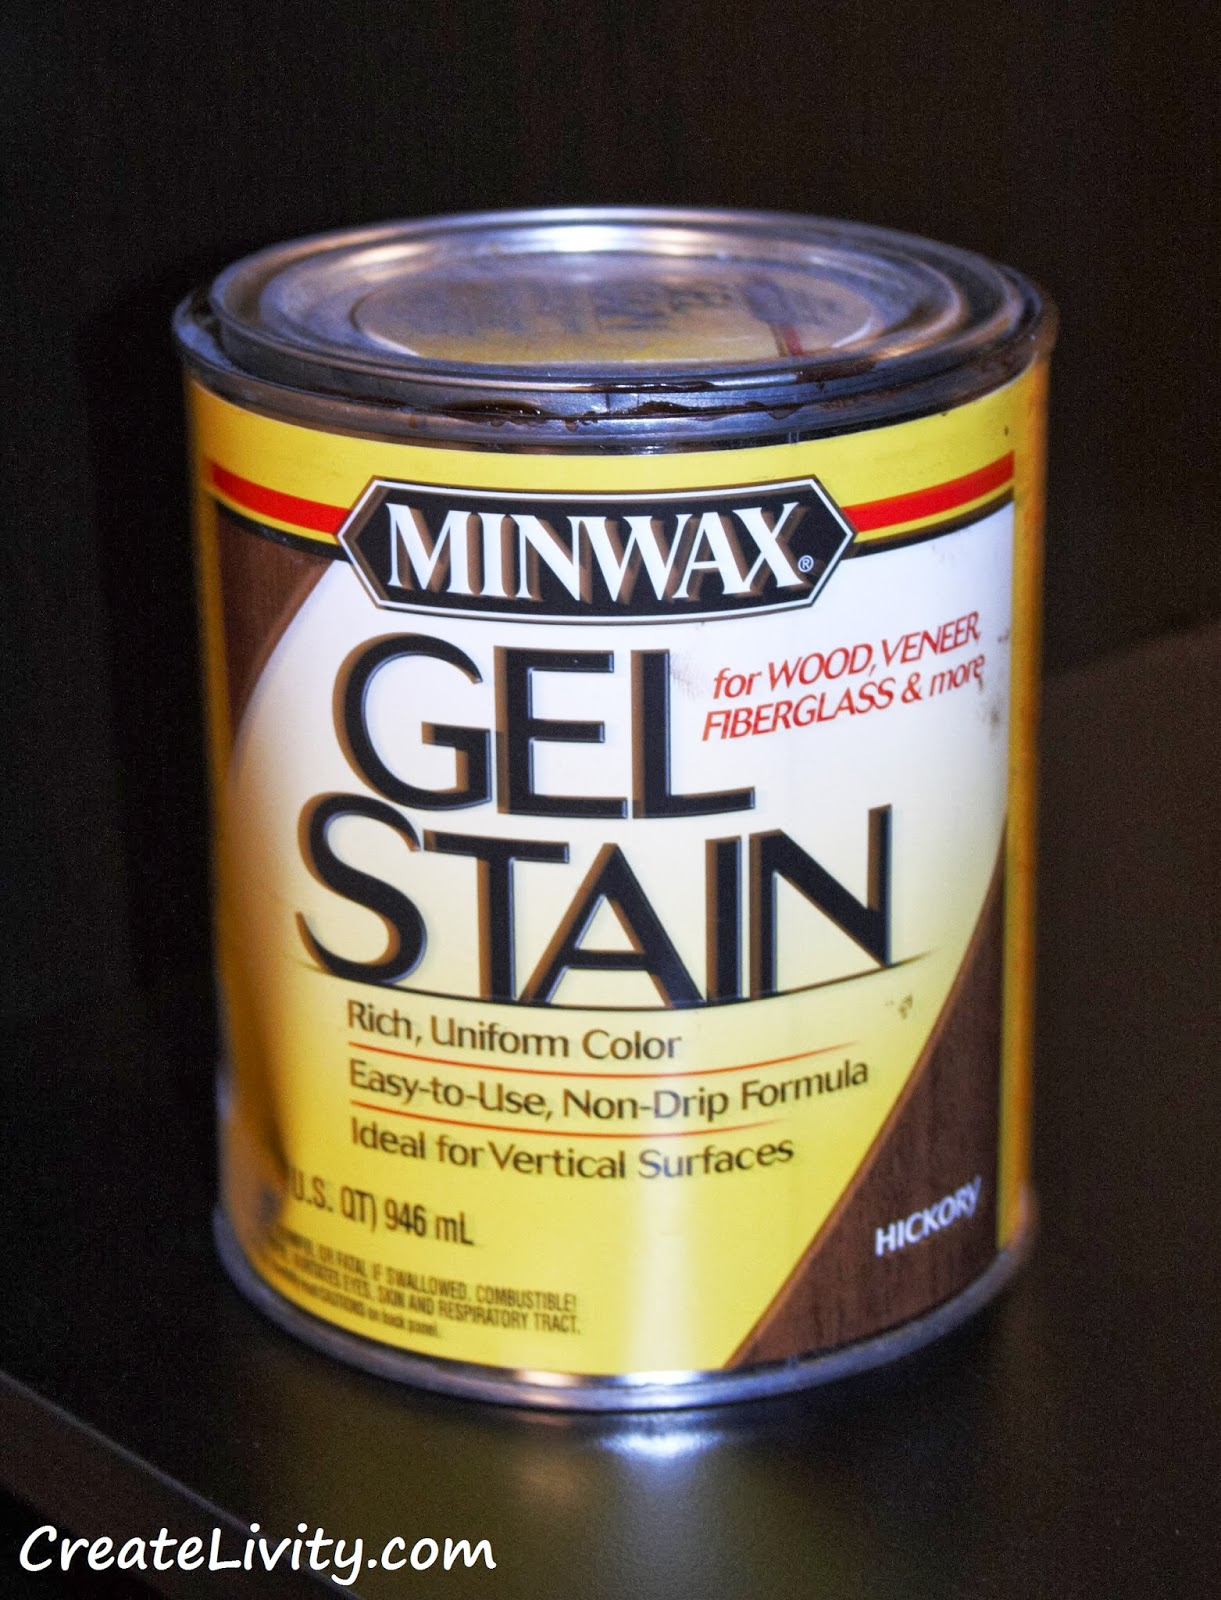 Can i stain over stain - Stain Over Paint Gives An Antiqued Appearance And Adds Dark Shadowing Which I Find Absolutely Stunning Over Red Paint If There Are Grooves Or Cut Outs In